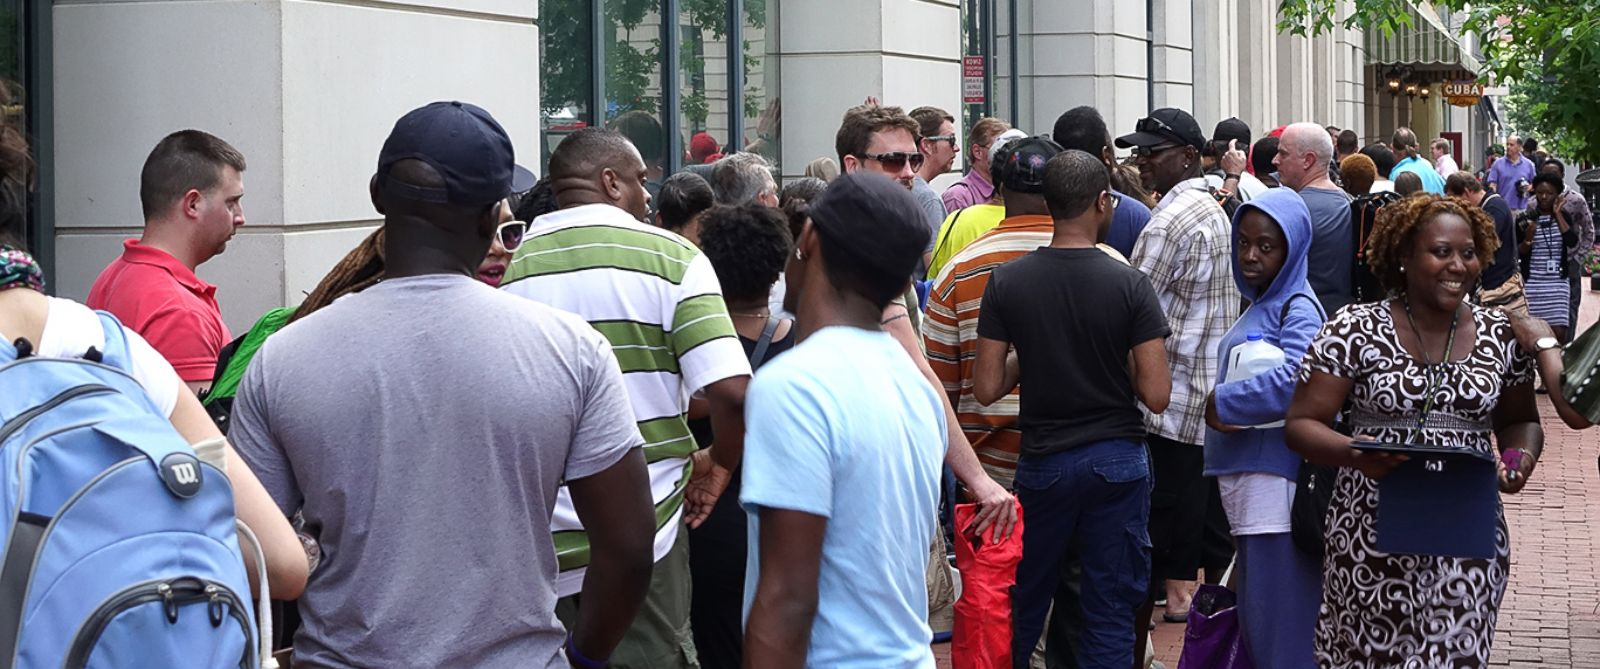 PHOTO: Lines of people wait outside the U.S. Mint headquarters in downtown Washington, D.C. on Aug. 5, 2014 for the 50th anniversary JFK gold coin release.